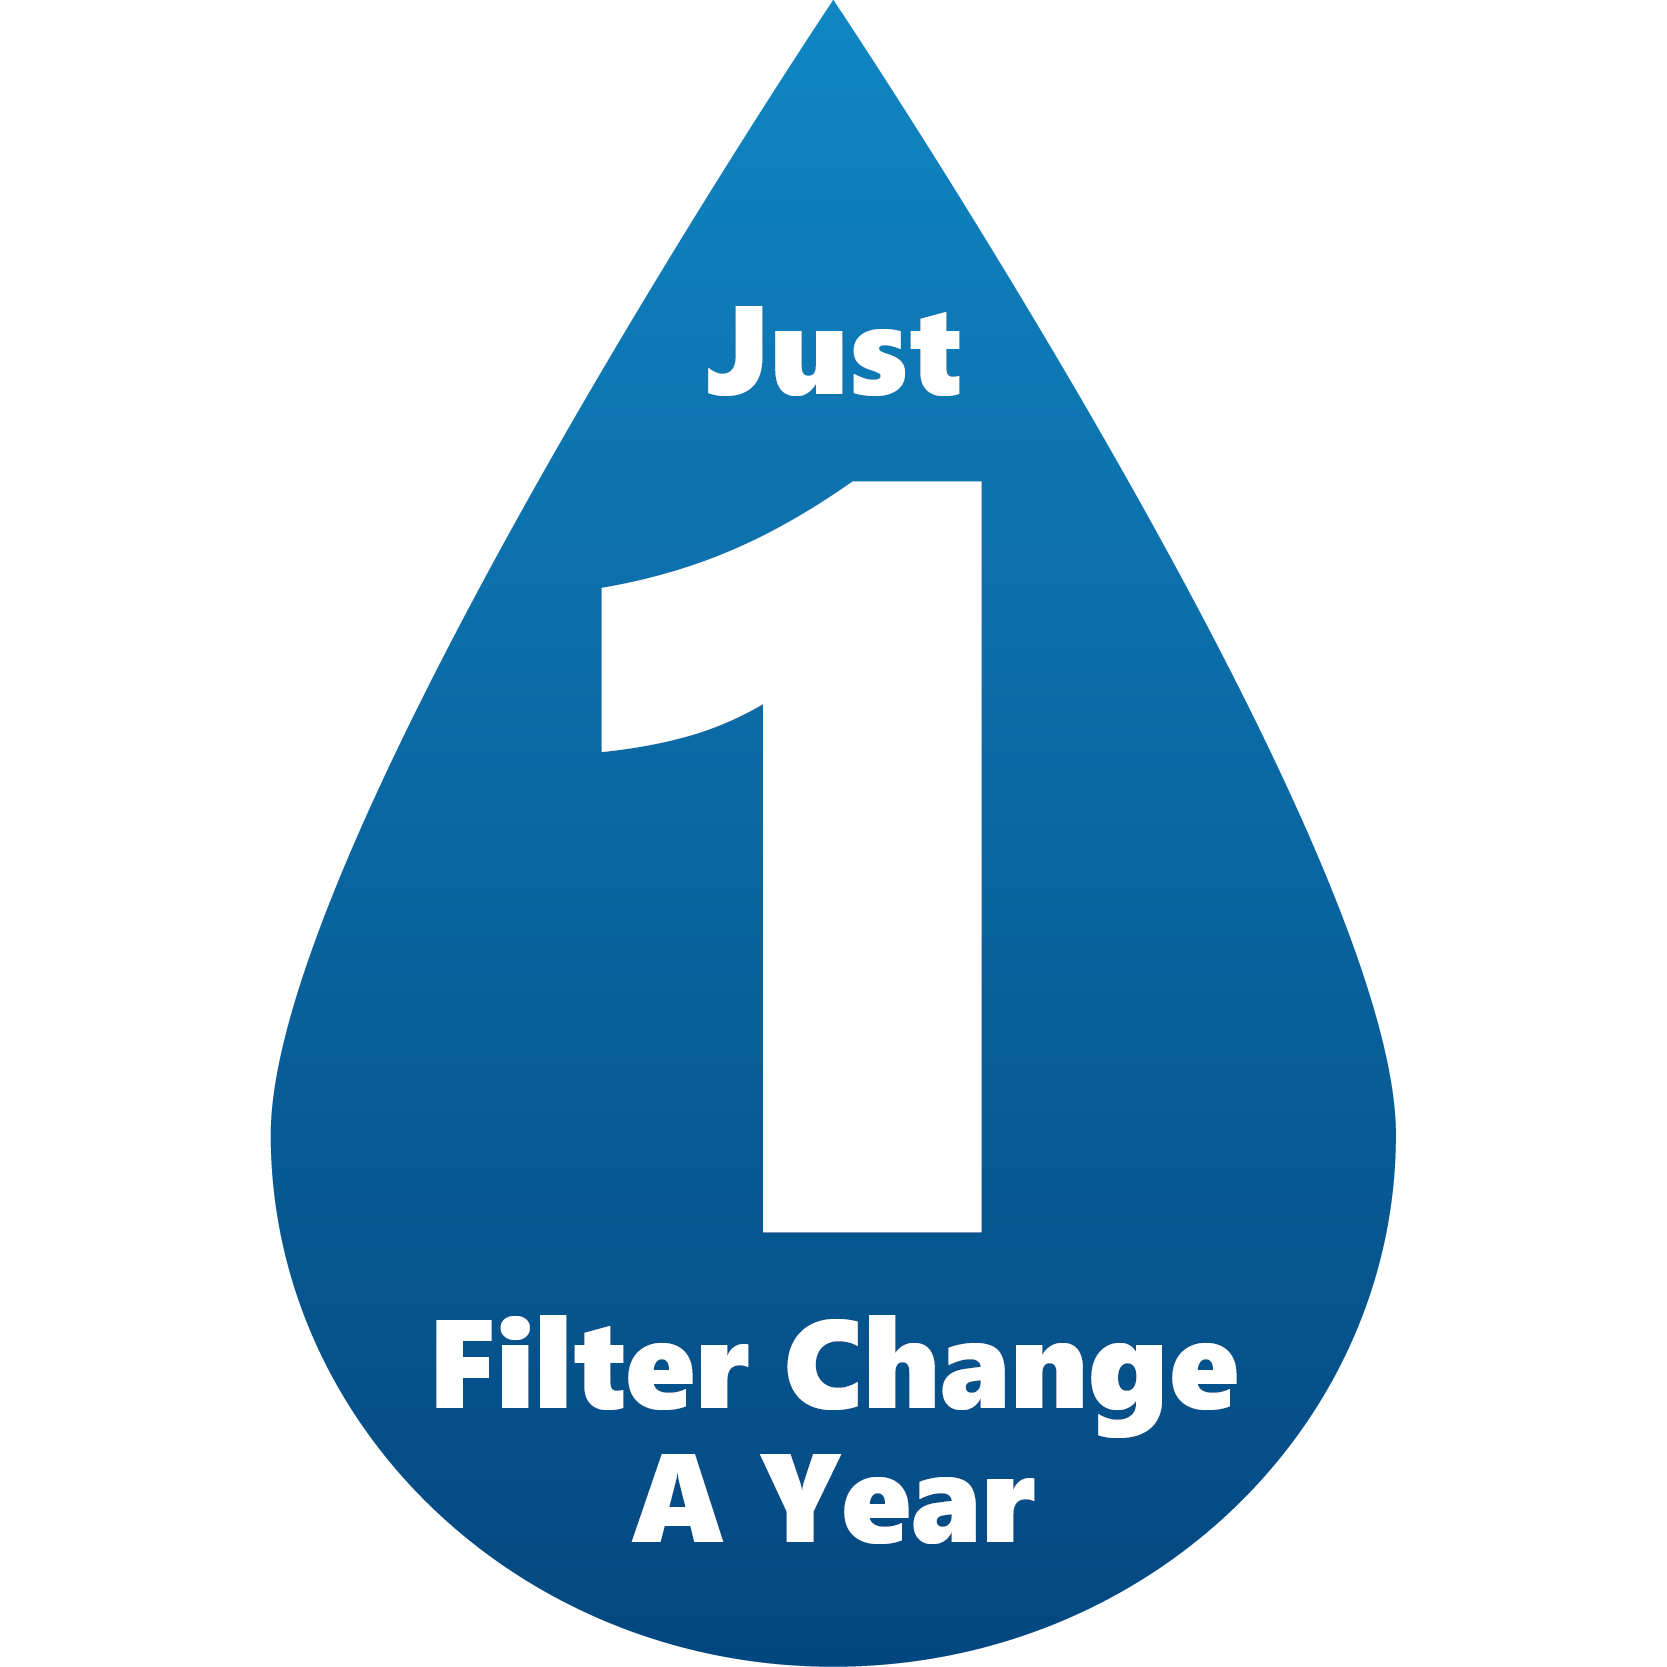 Just 1 Filter Change A Year